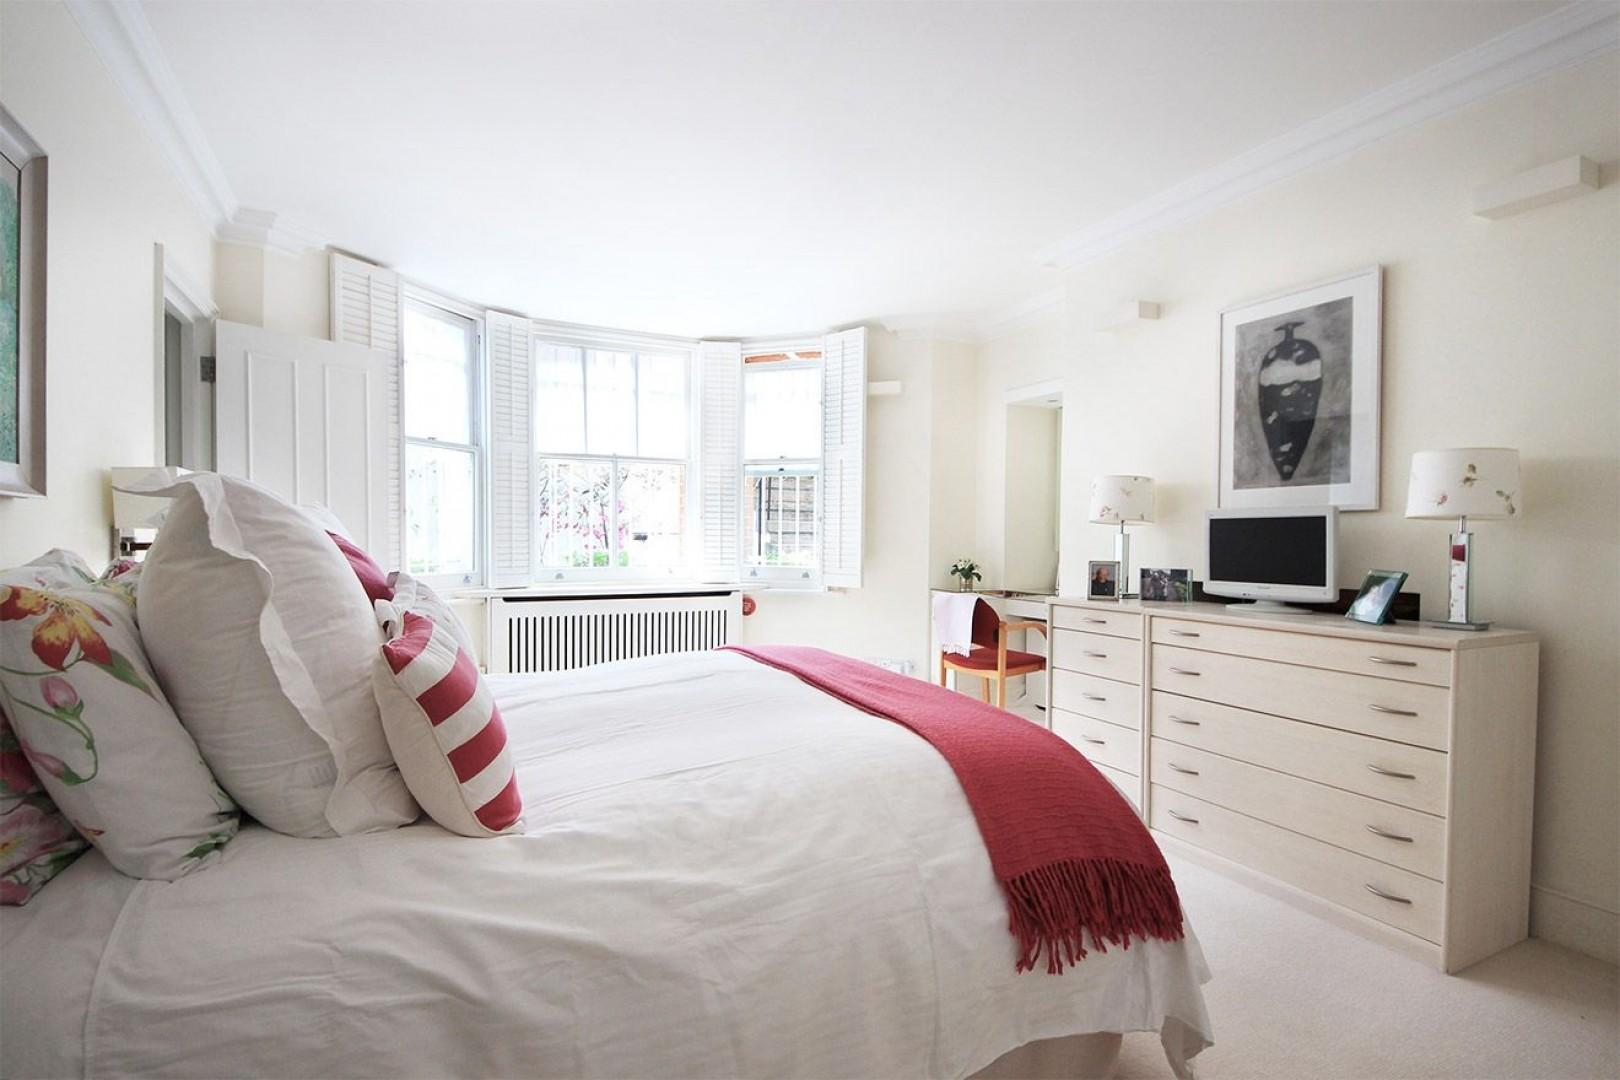 Spacious bedroom 1 is perfect for relaxing in style